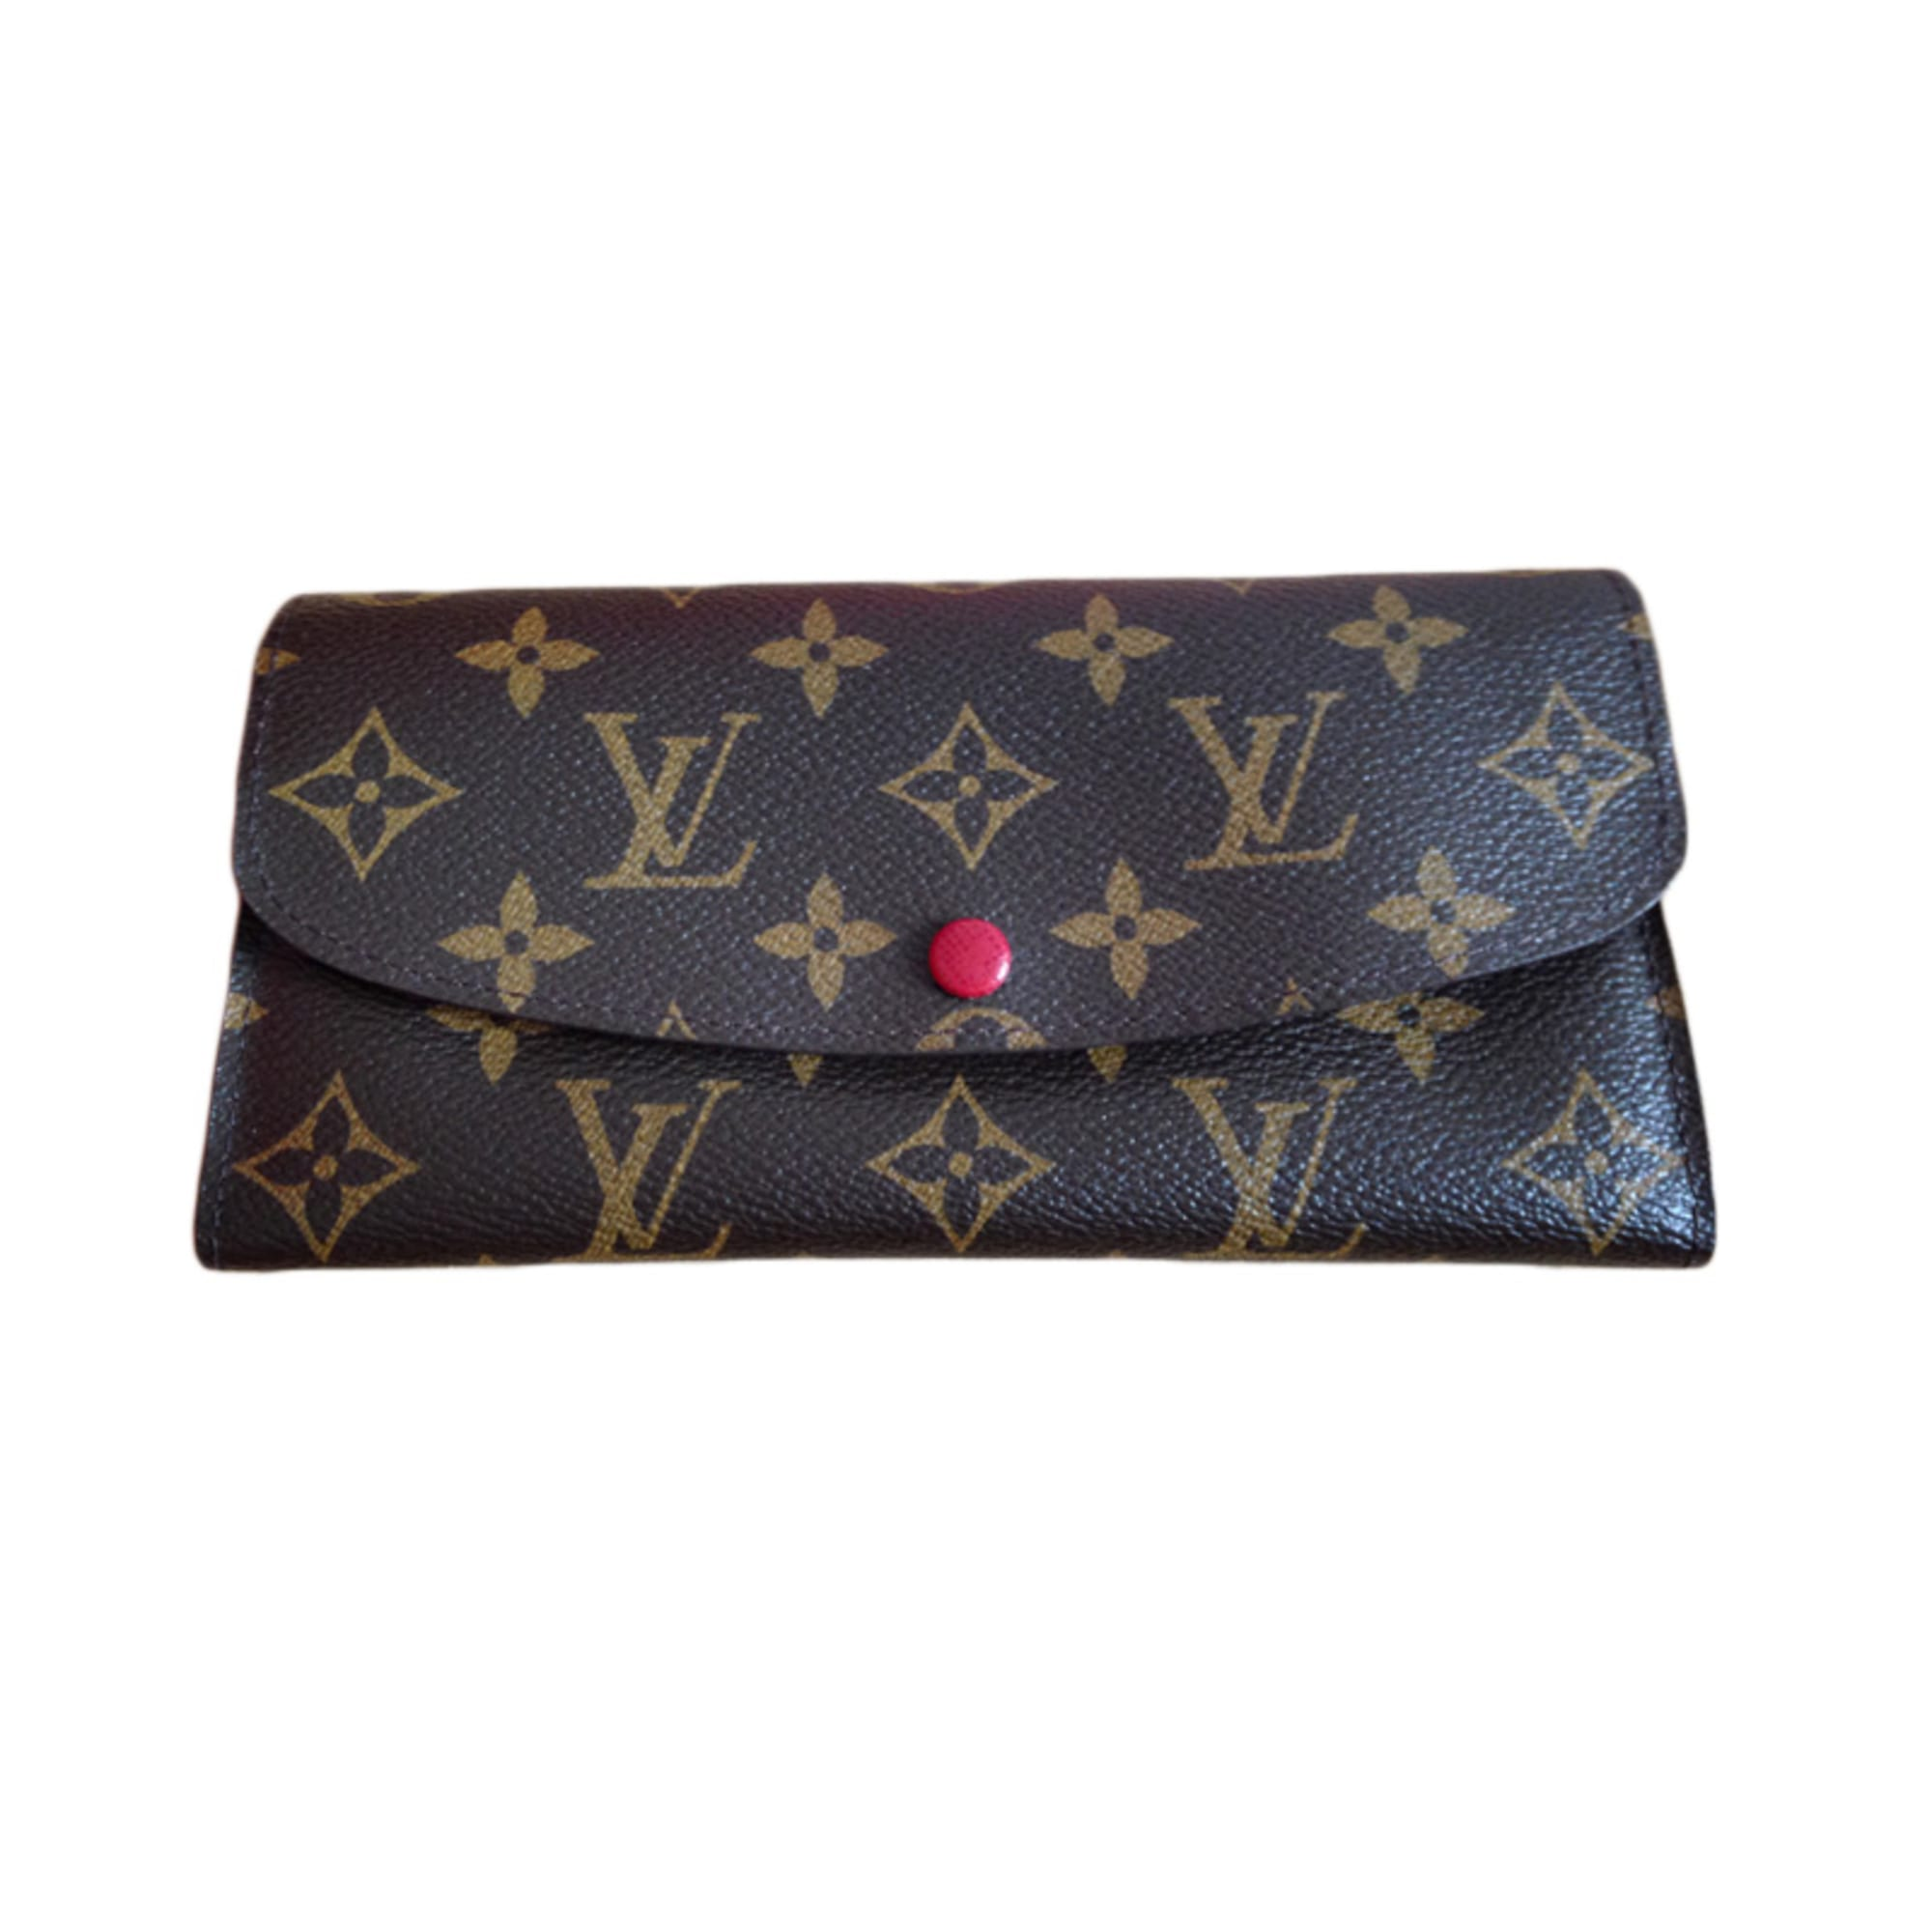 Portefeuille LOUIS VUITTON marron vendu par D annabella2198940 - 2356072 cbb70ff94df